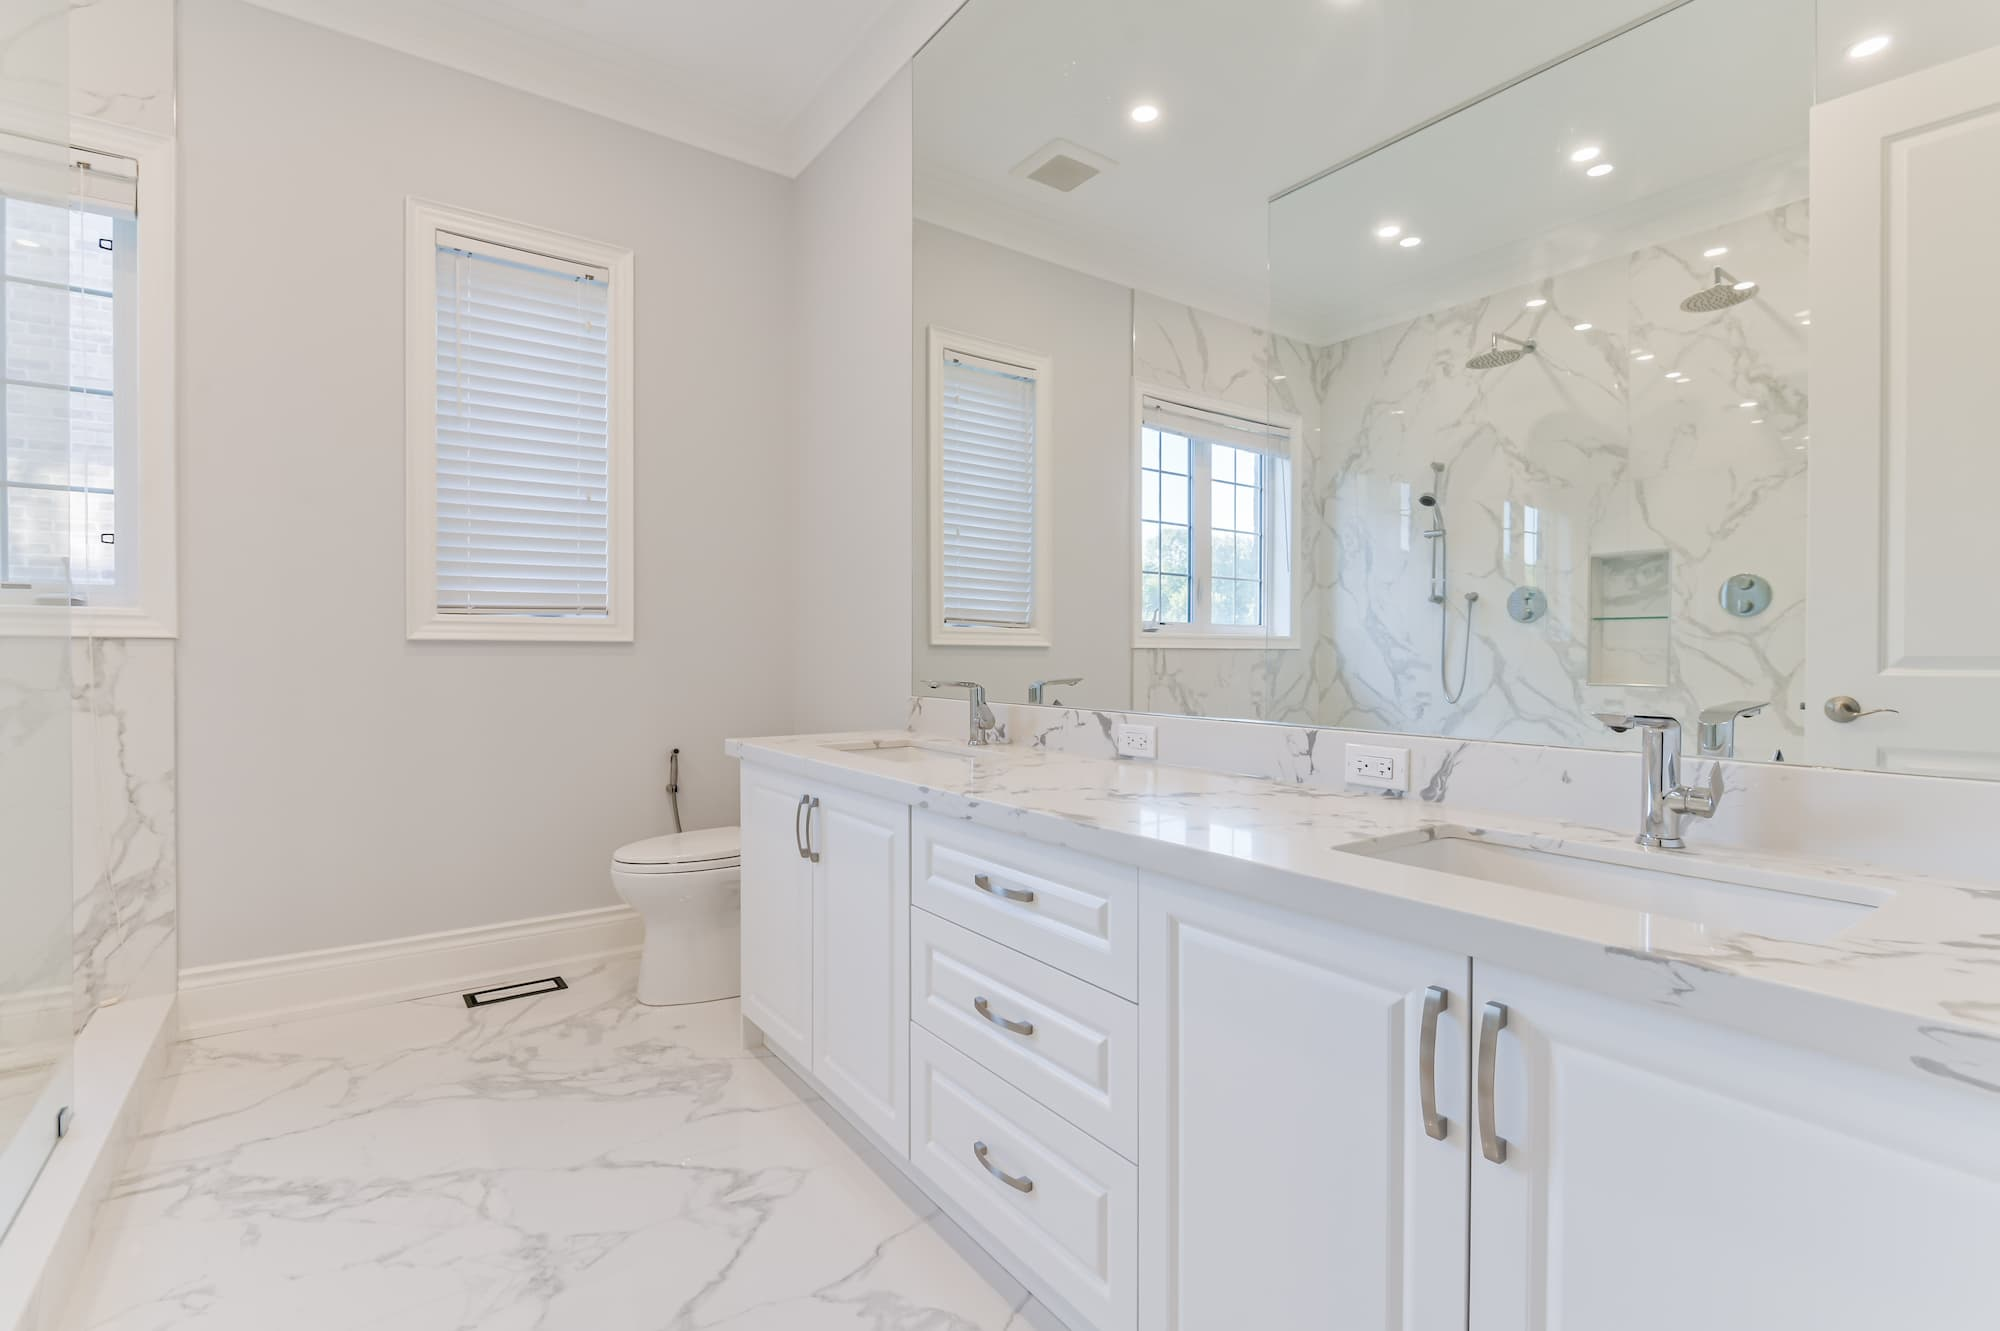 classical renovated bathroom with white vanity